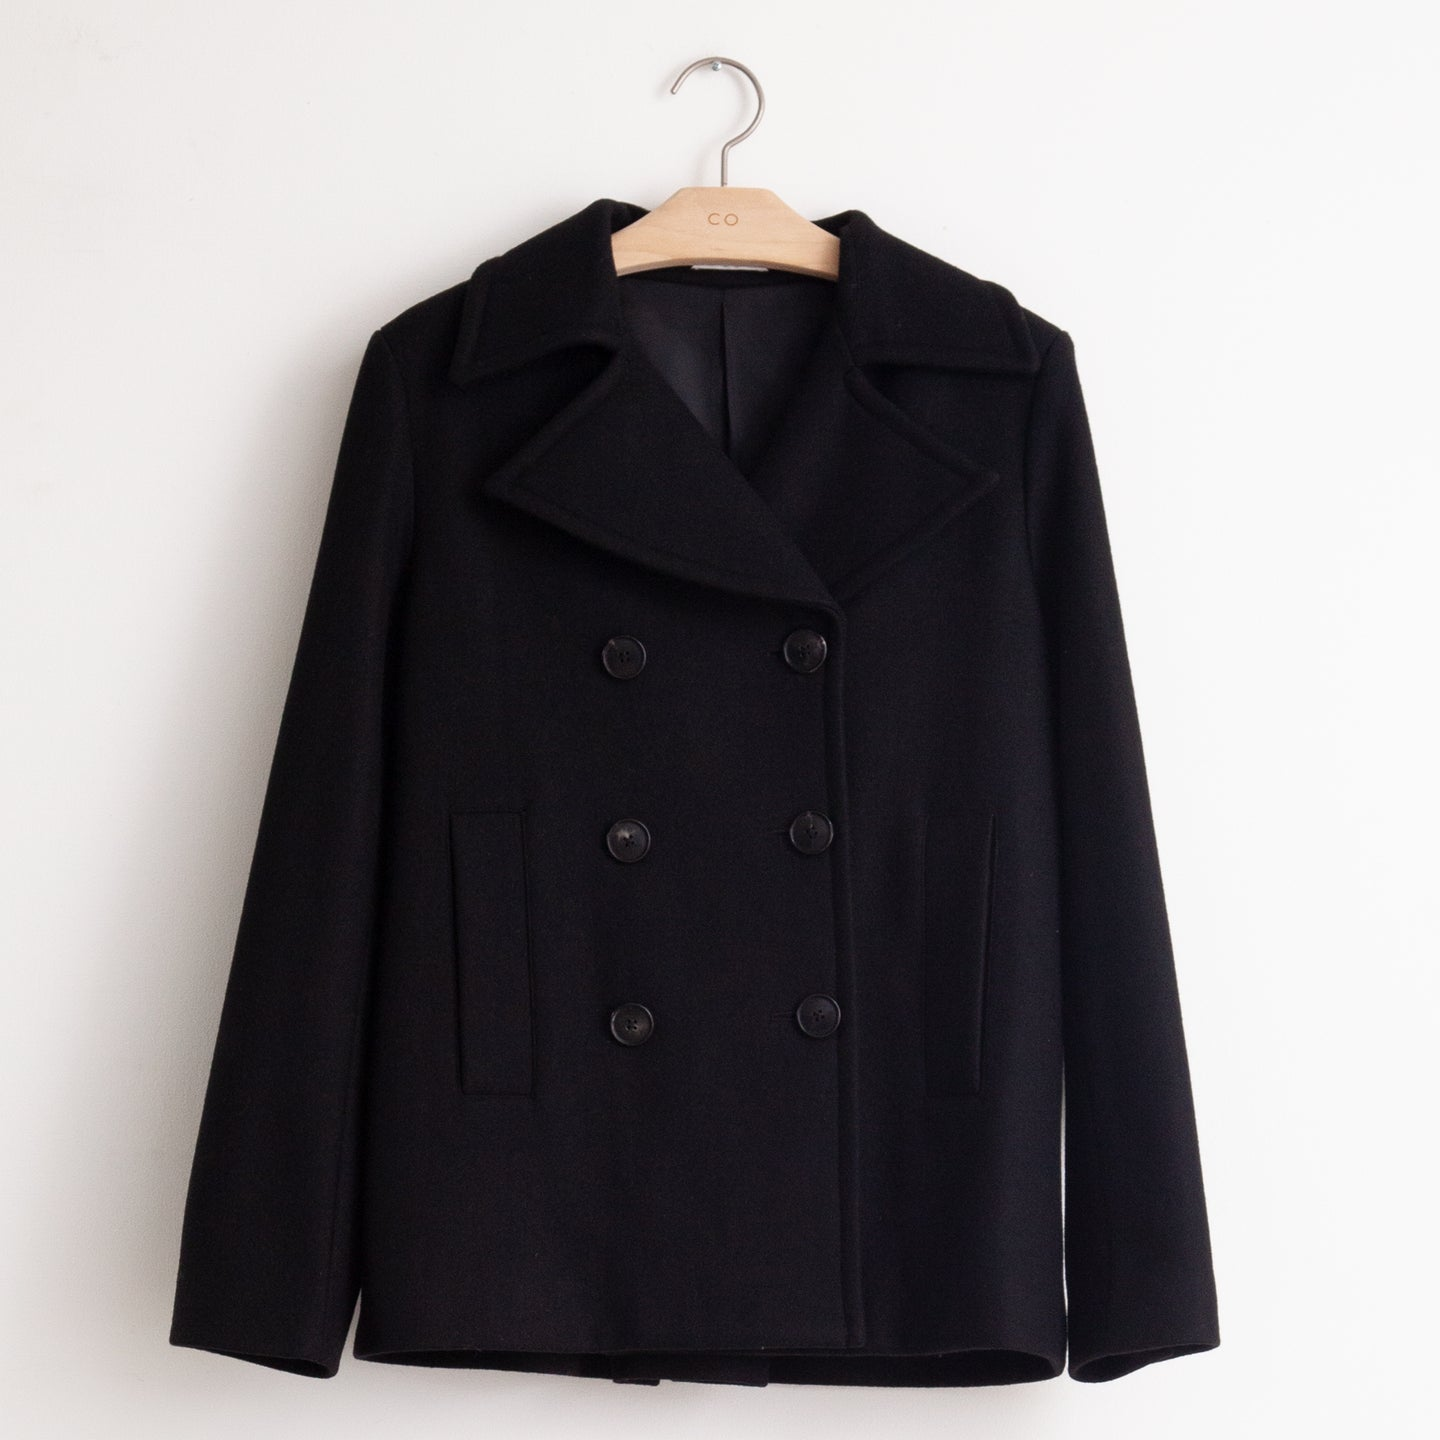 CO - Double breasted pea coat with back pleat in black soft wool